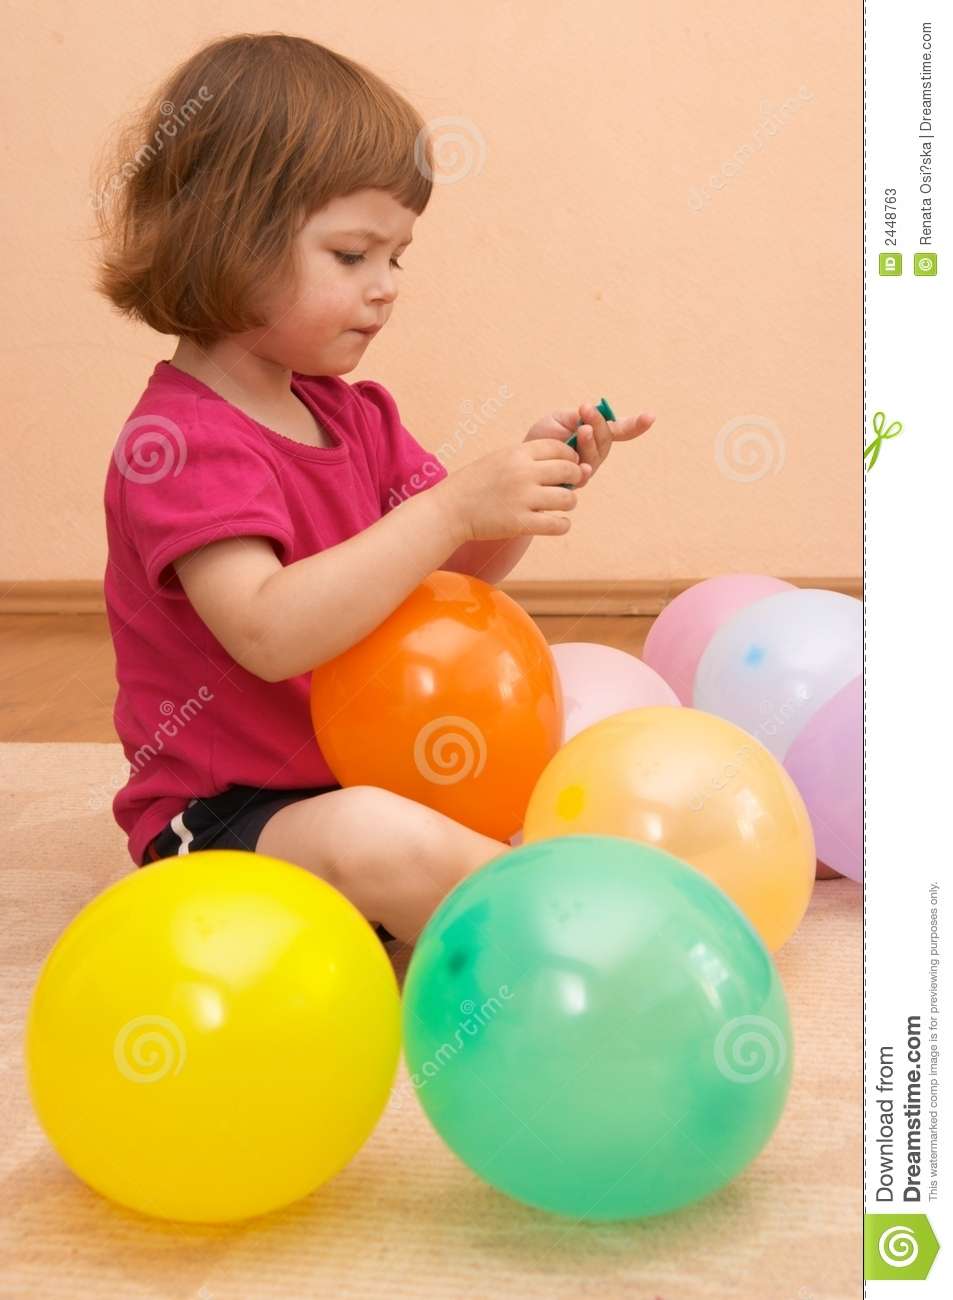 Play With Patterns Prints And Lots Of Accessories For: Playing With Balloons Stock Image. Image Of Girl